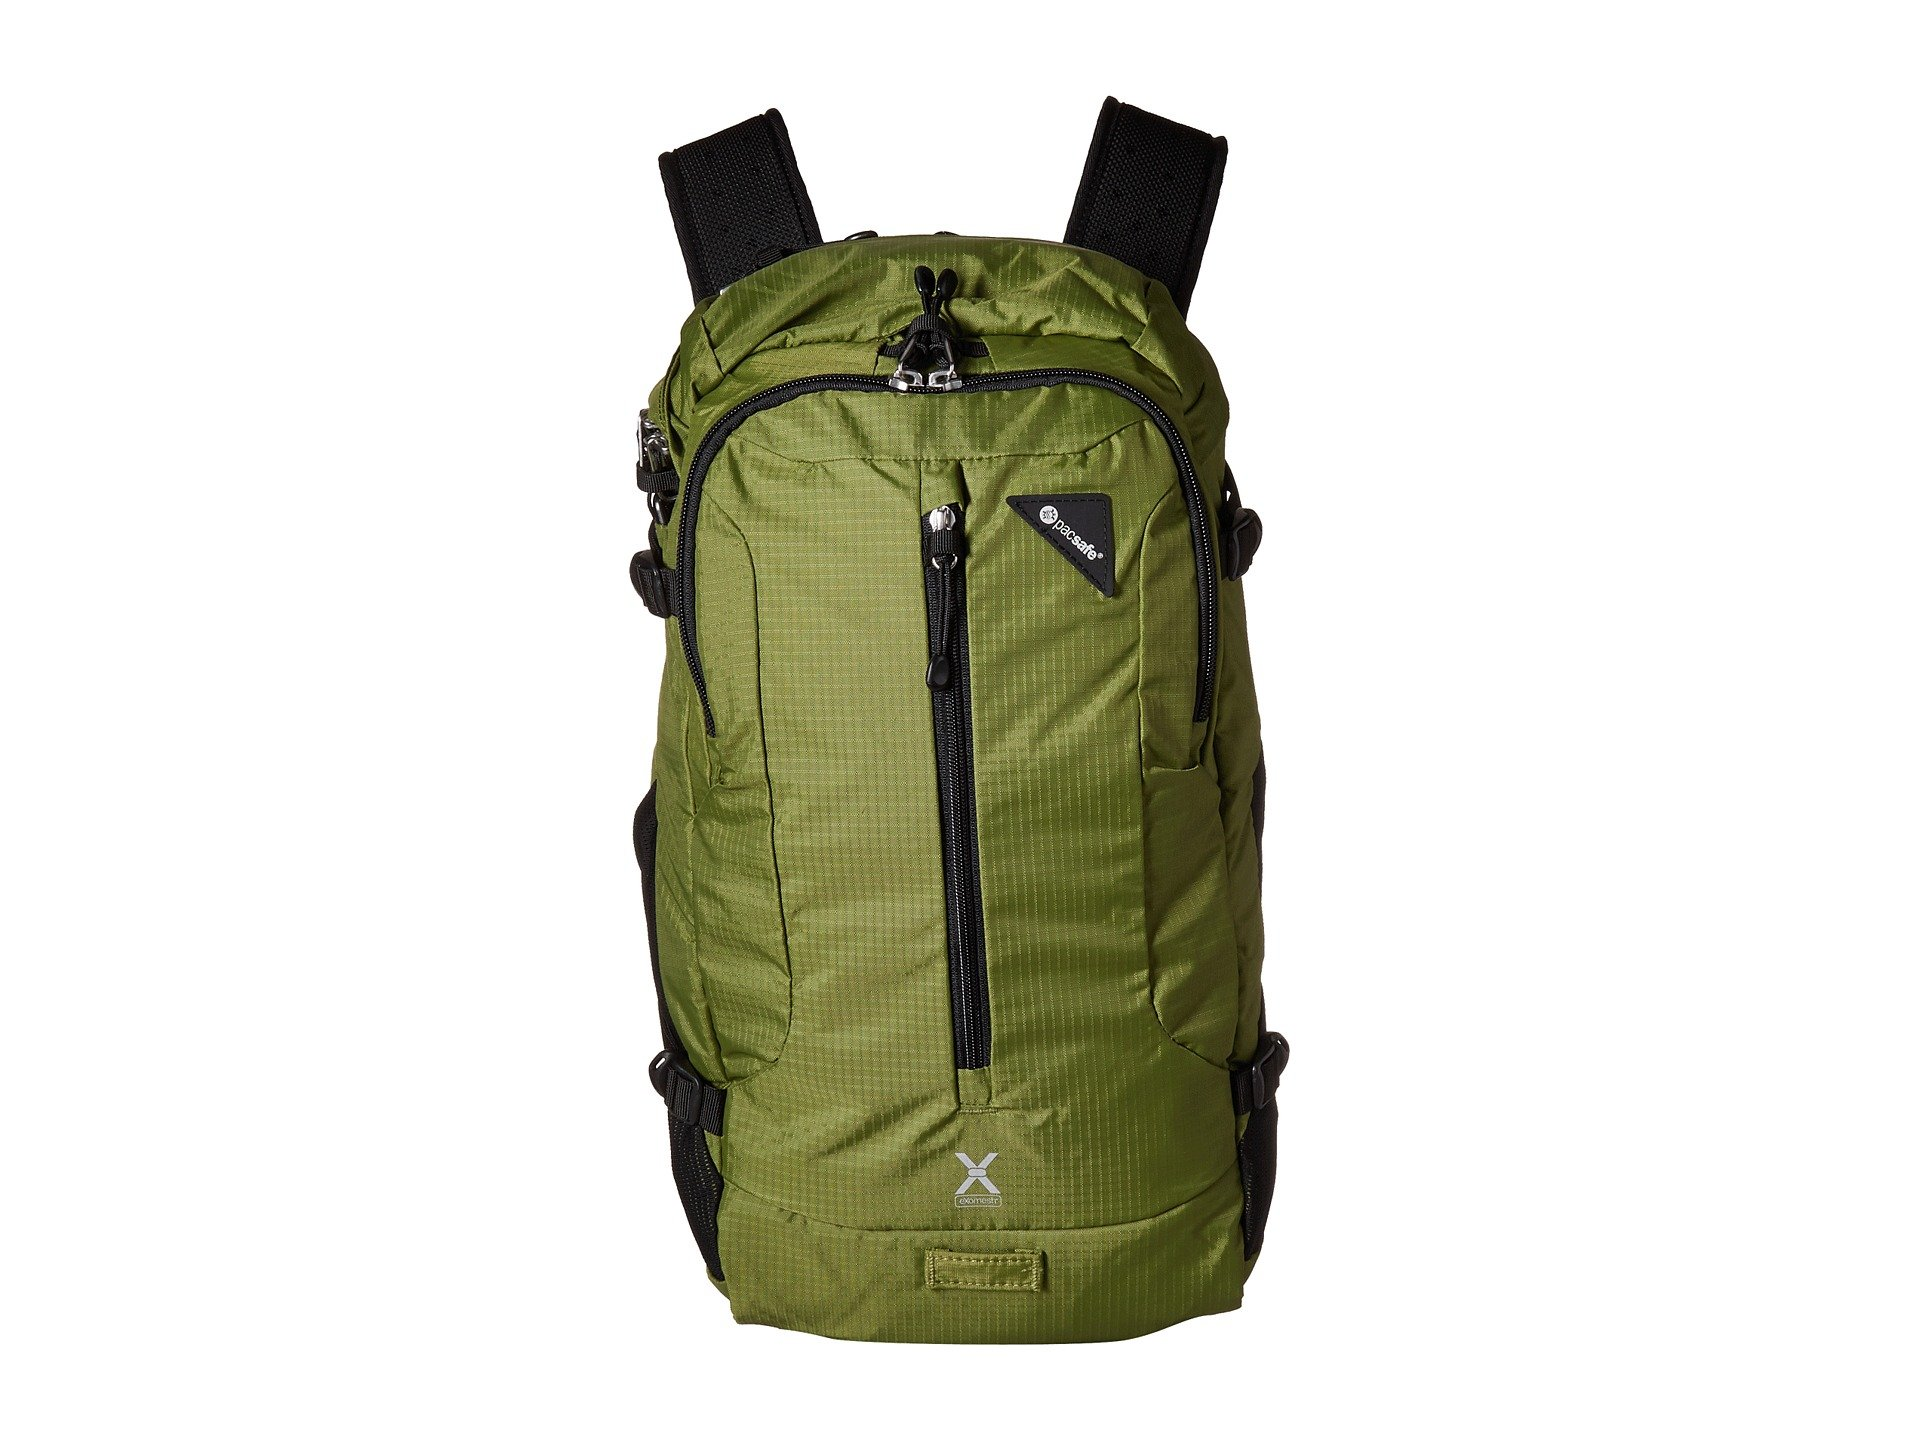 Pacsafe Unisex Venturesafe X22 Anti-Theft Adventure Backpack Olive Green One Size by Pacsafe